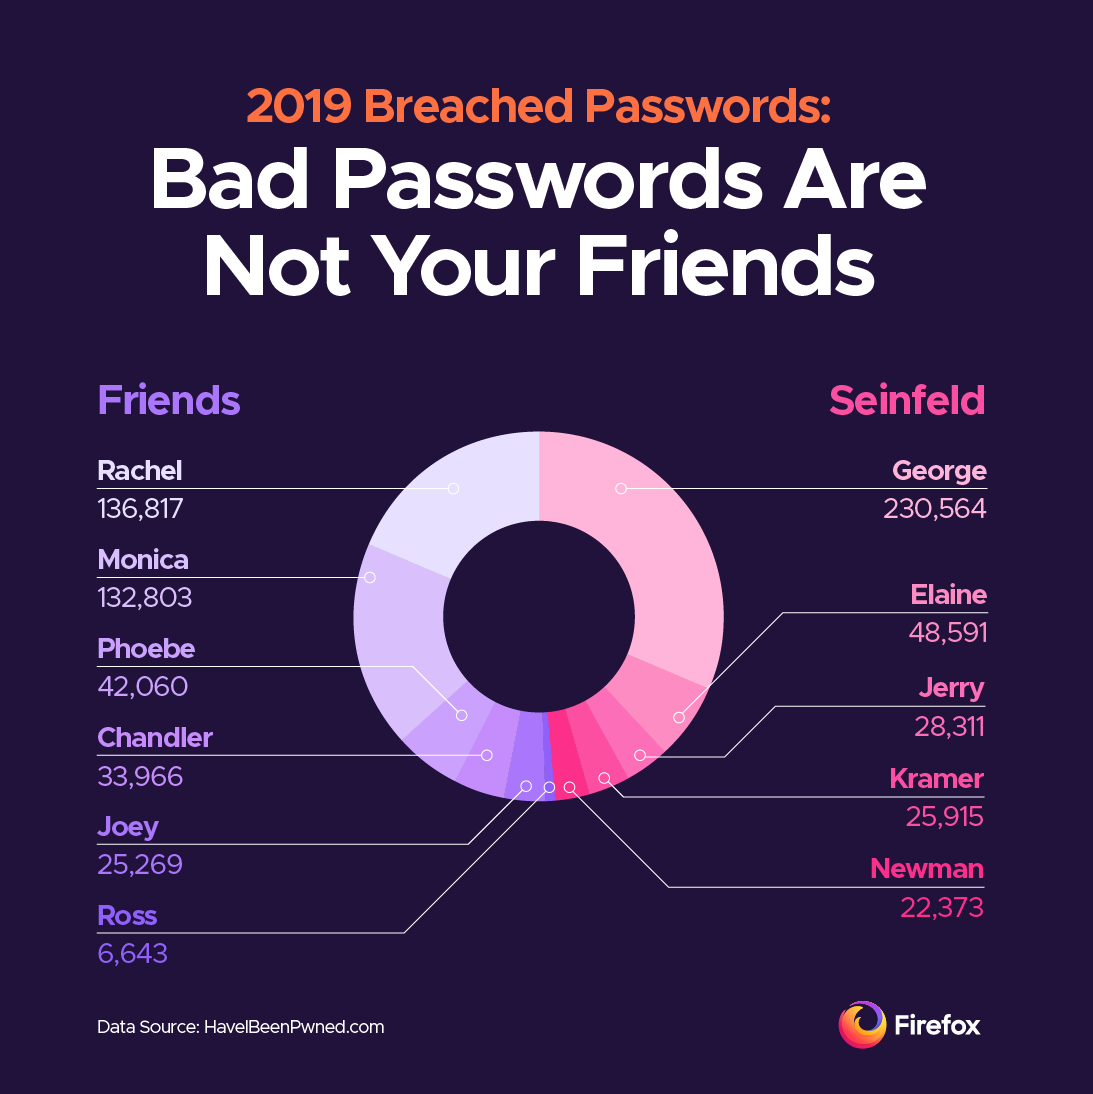 Bad passwords are not your Friends, Jerry